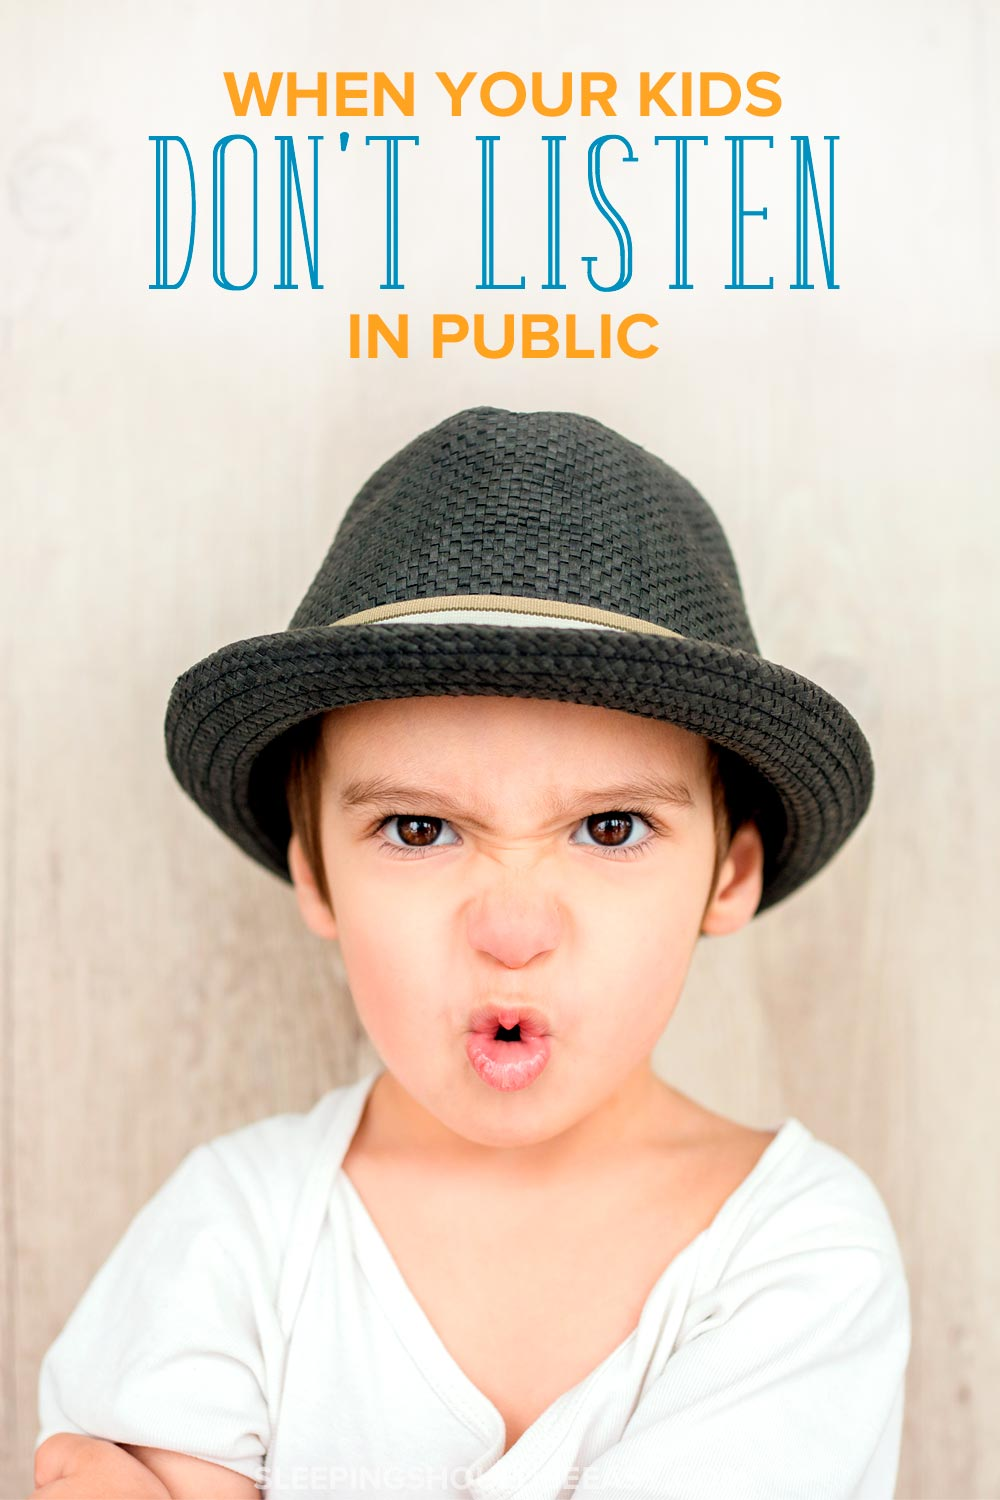 Do you spend every family outing managing misbehaving kids? Learn what to do when kids don't listen in public so you can enjoy your time together.